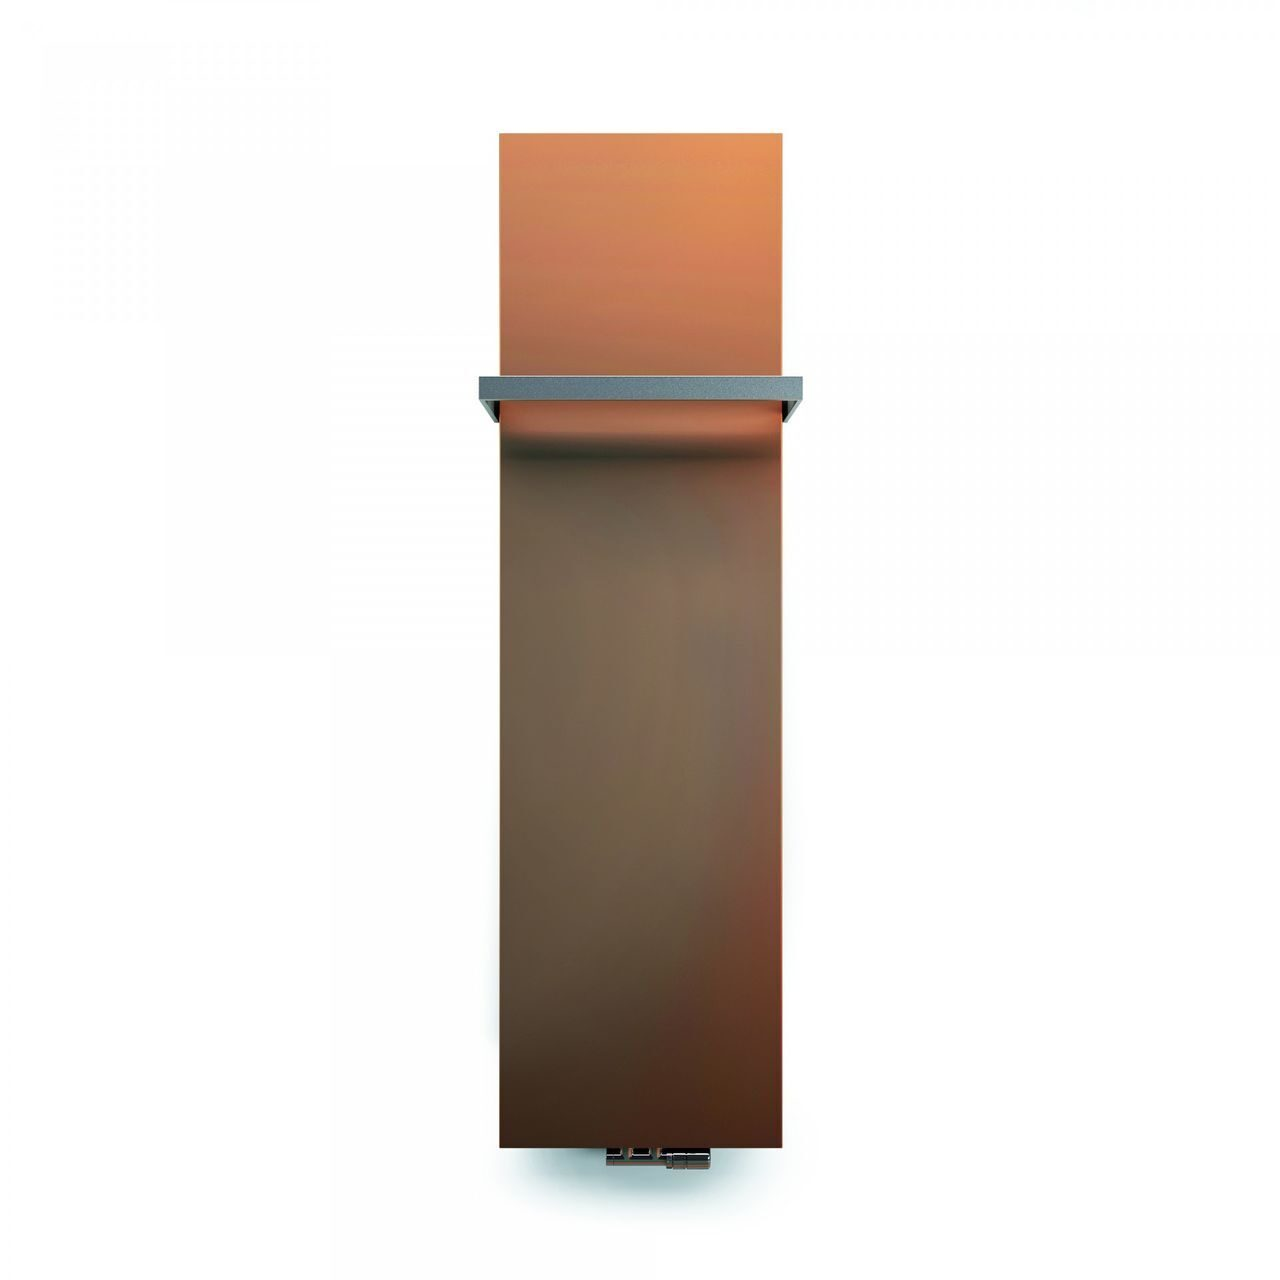 terma_case_front_copper_0